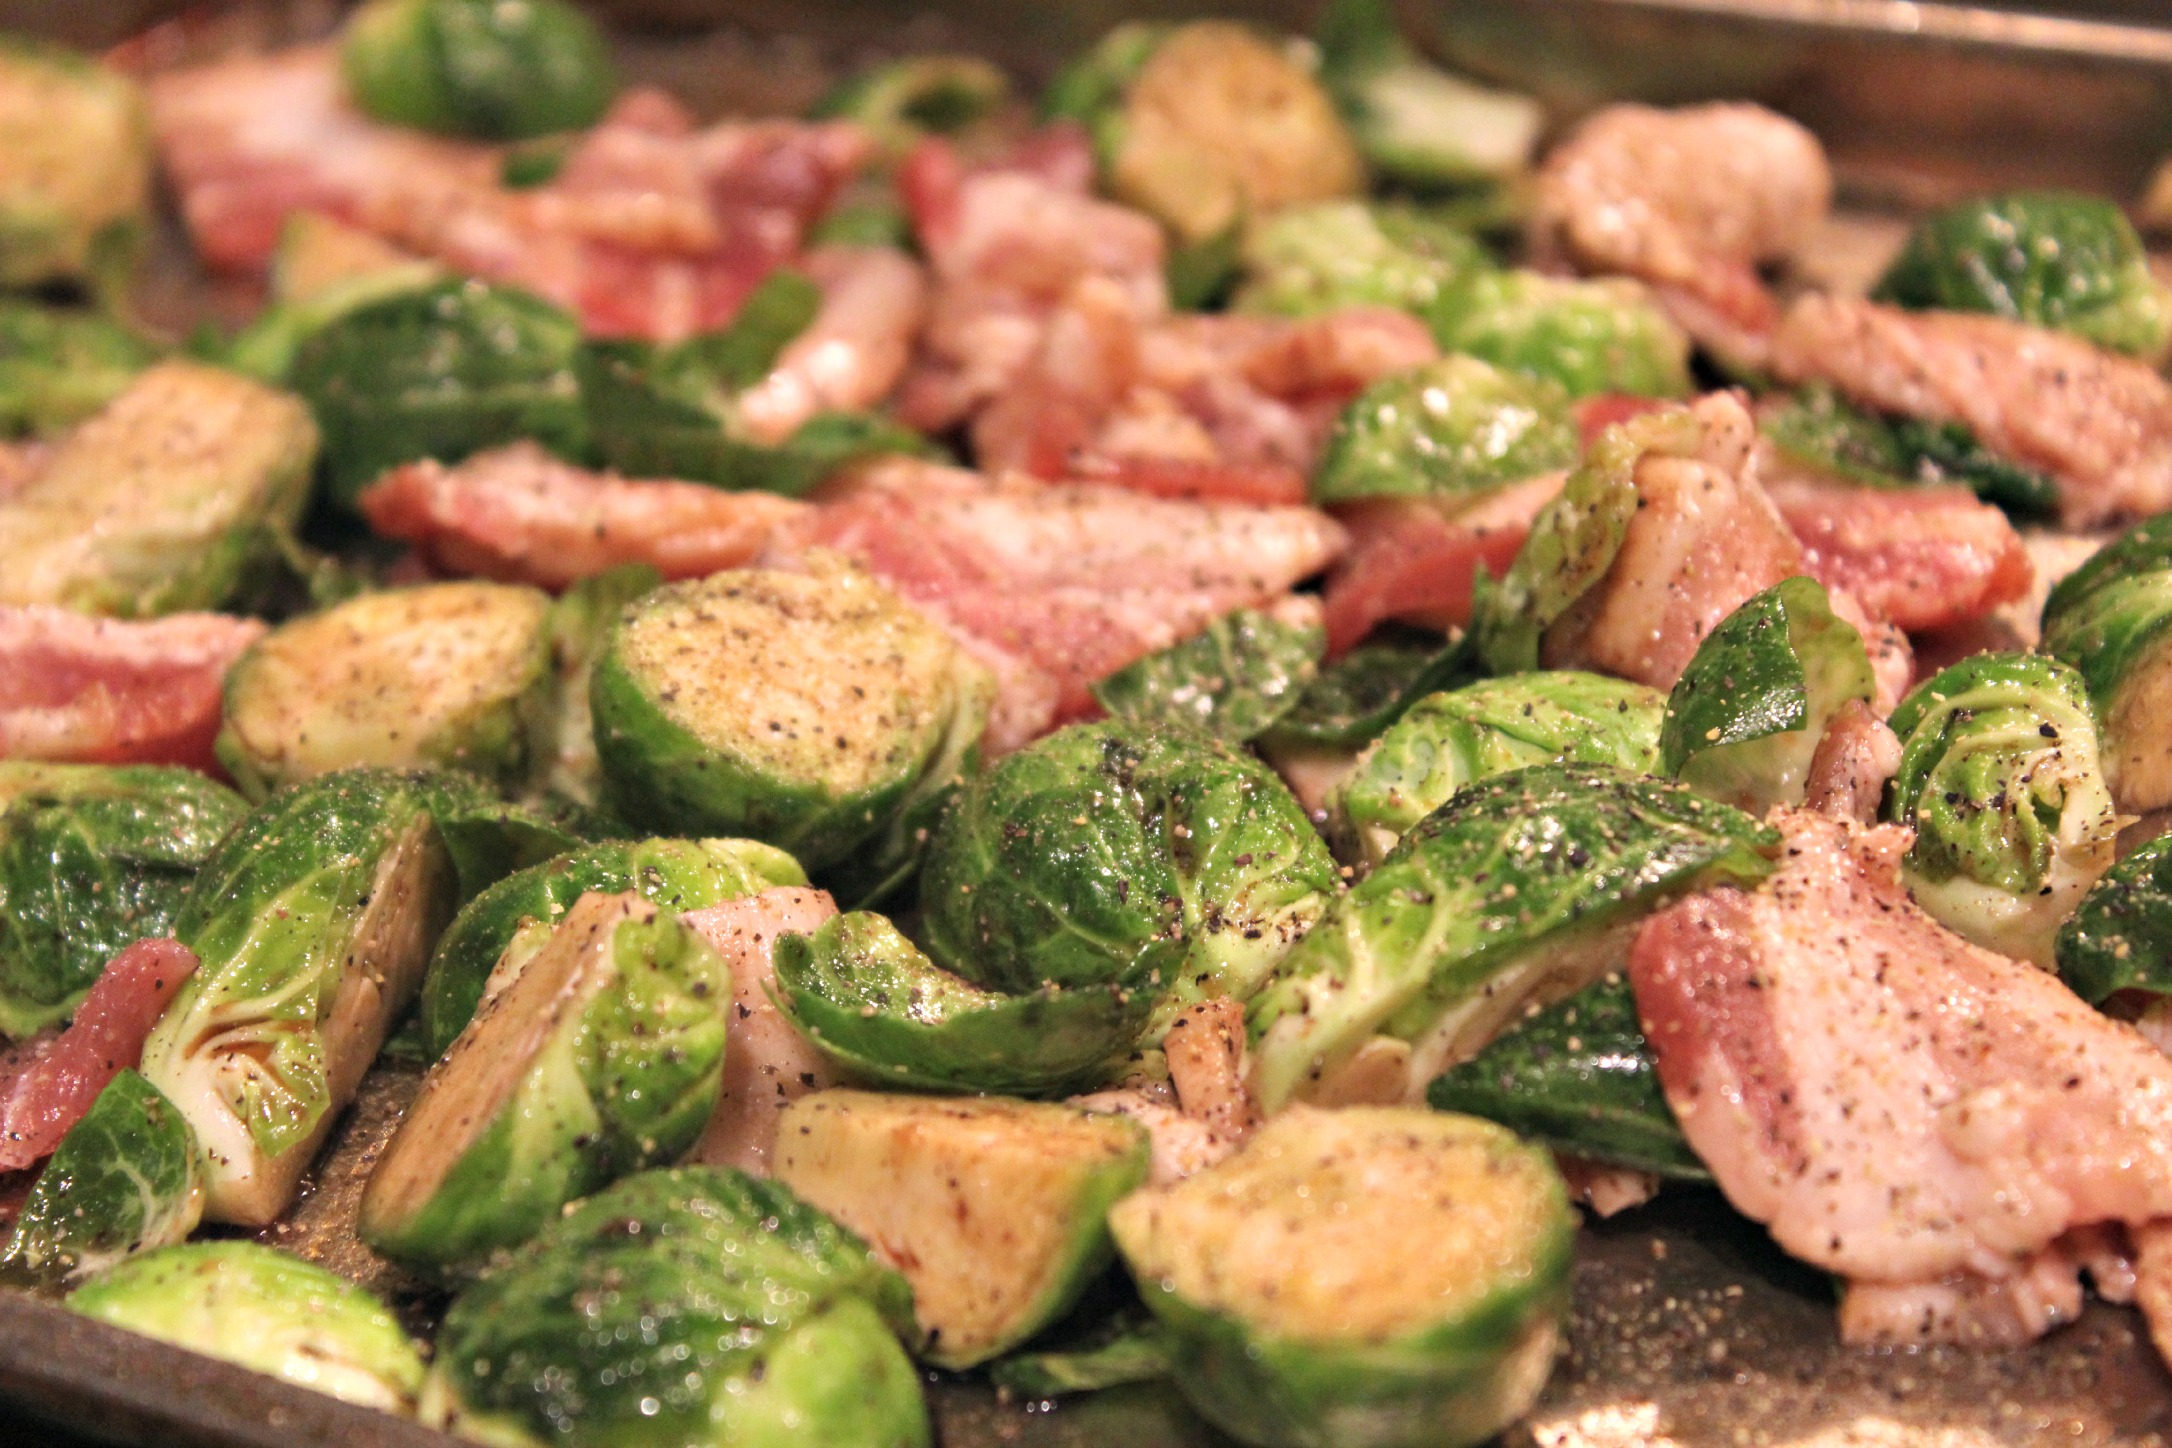 Roasted Brussel Sprouts with Bacon pre roasting